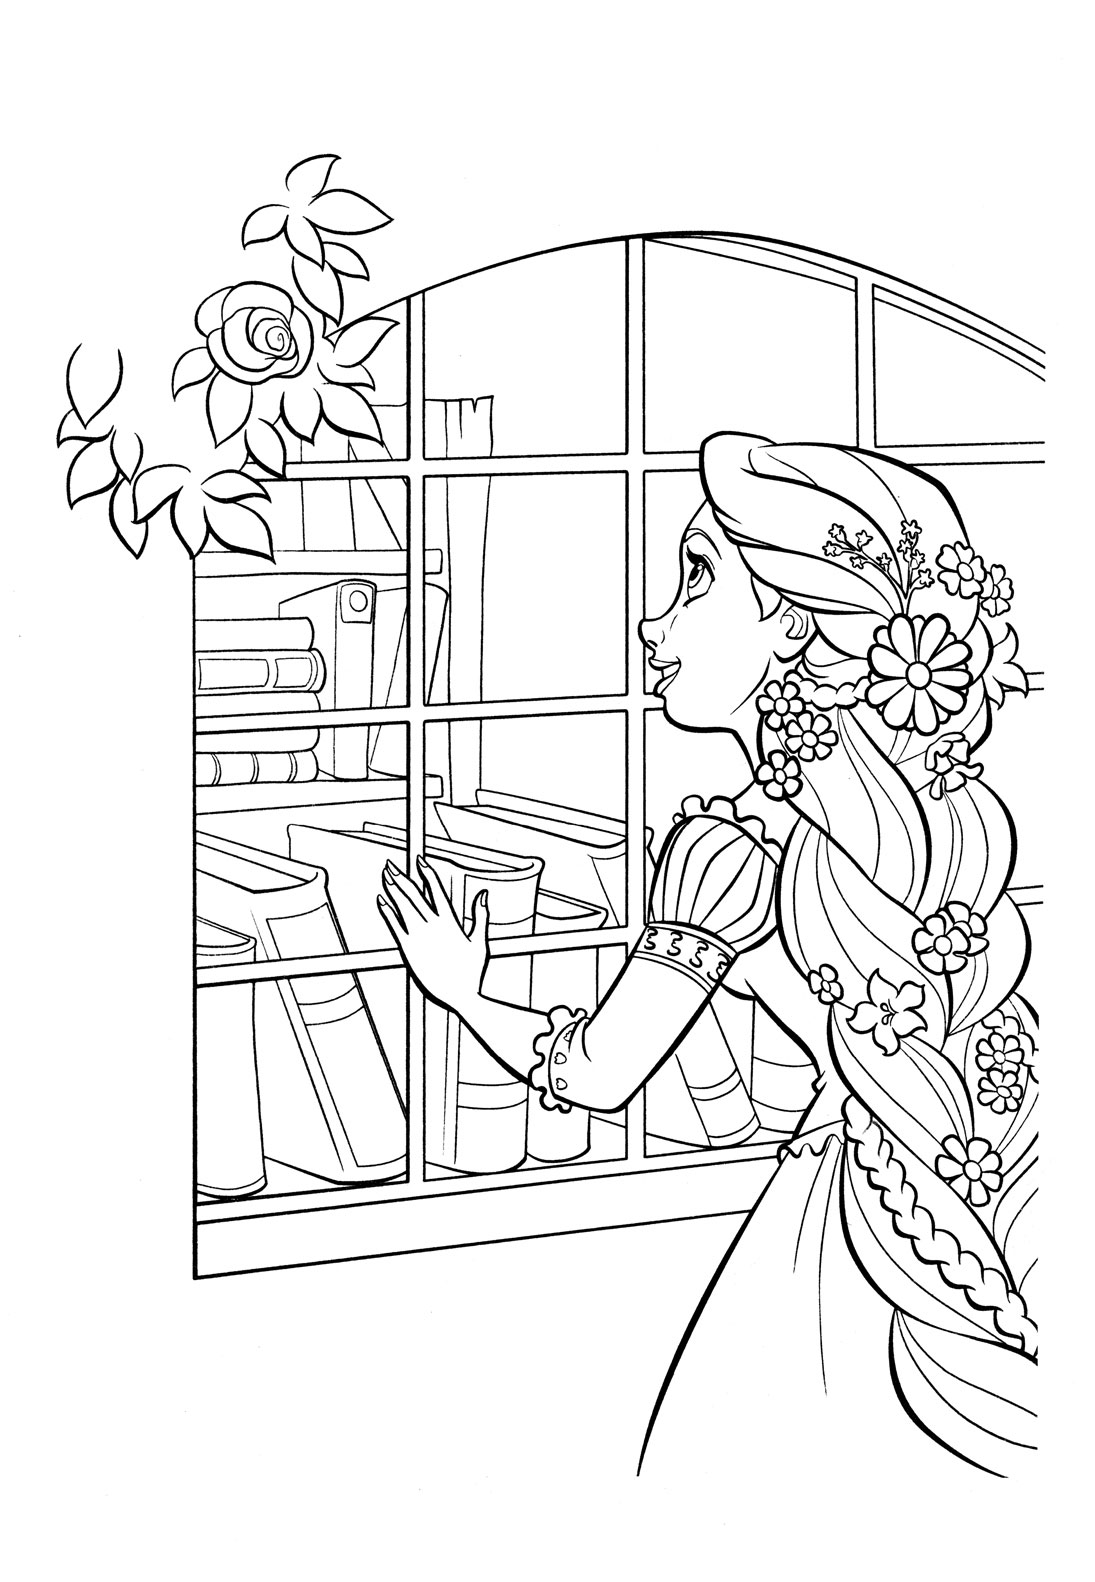 coloring sheet kids pbs coloring pages coloring home coloring kids sheet